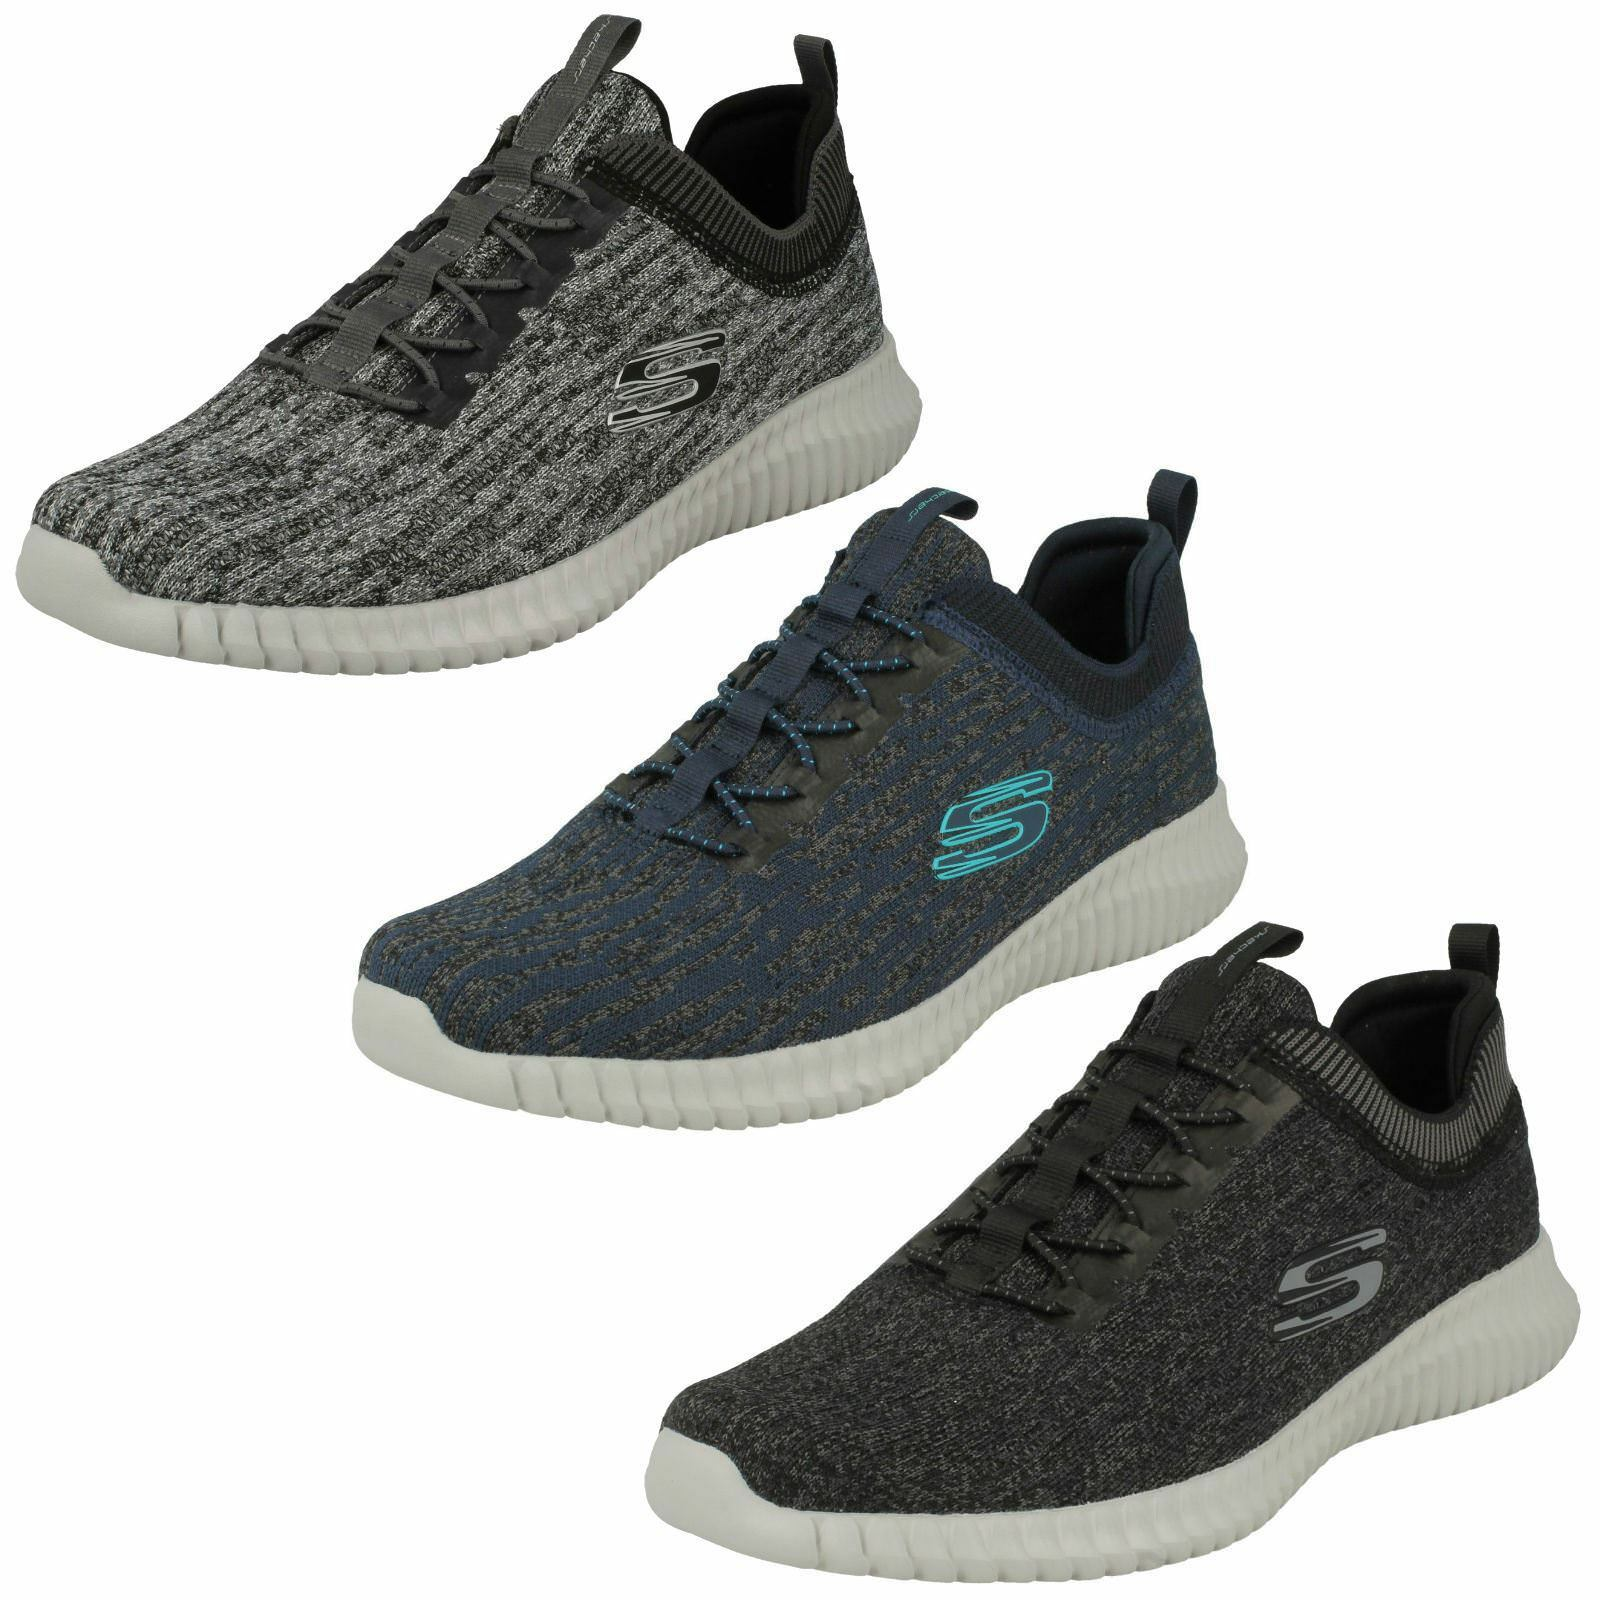 'Mens Skechers' Casual Memory Foam Trainers - Hartnell 52642